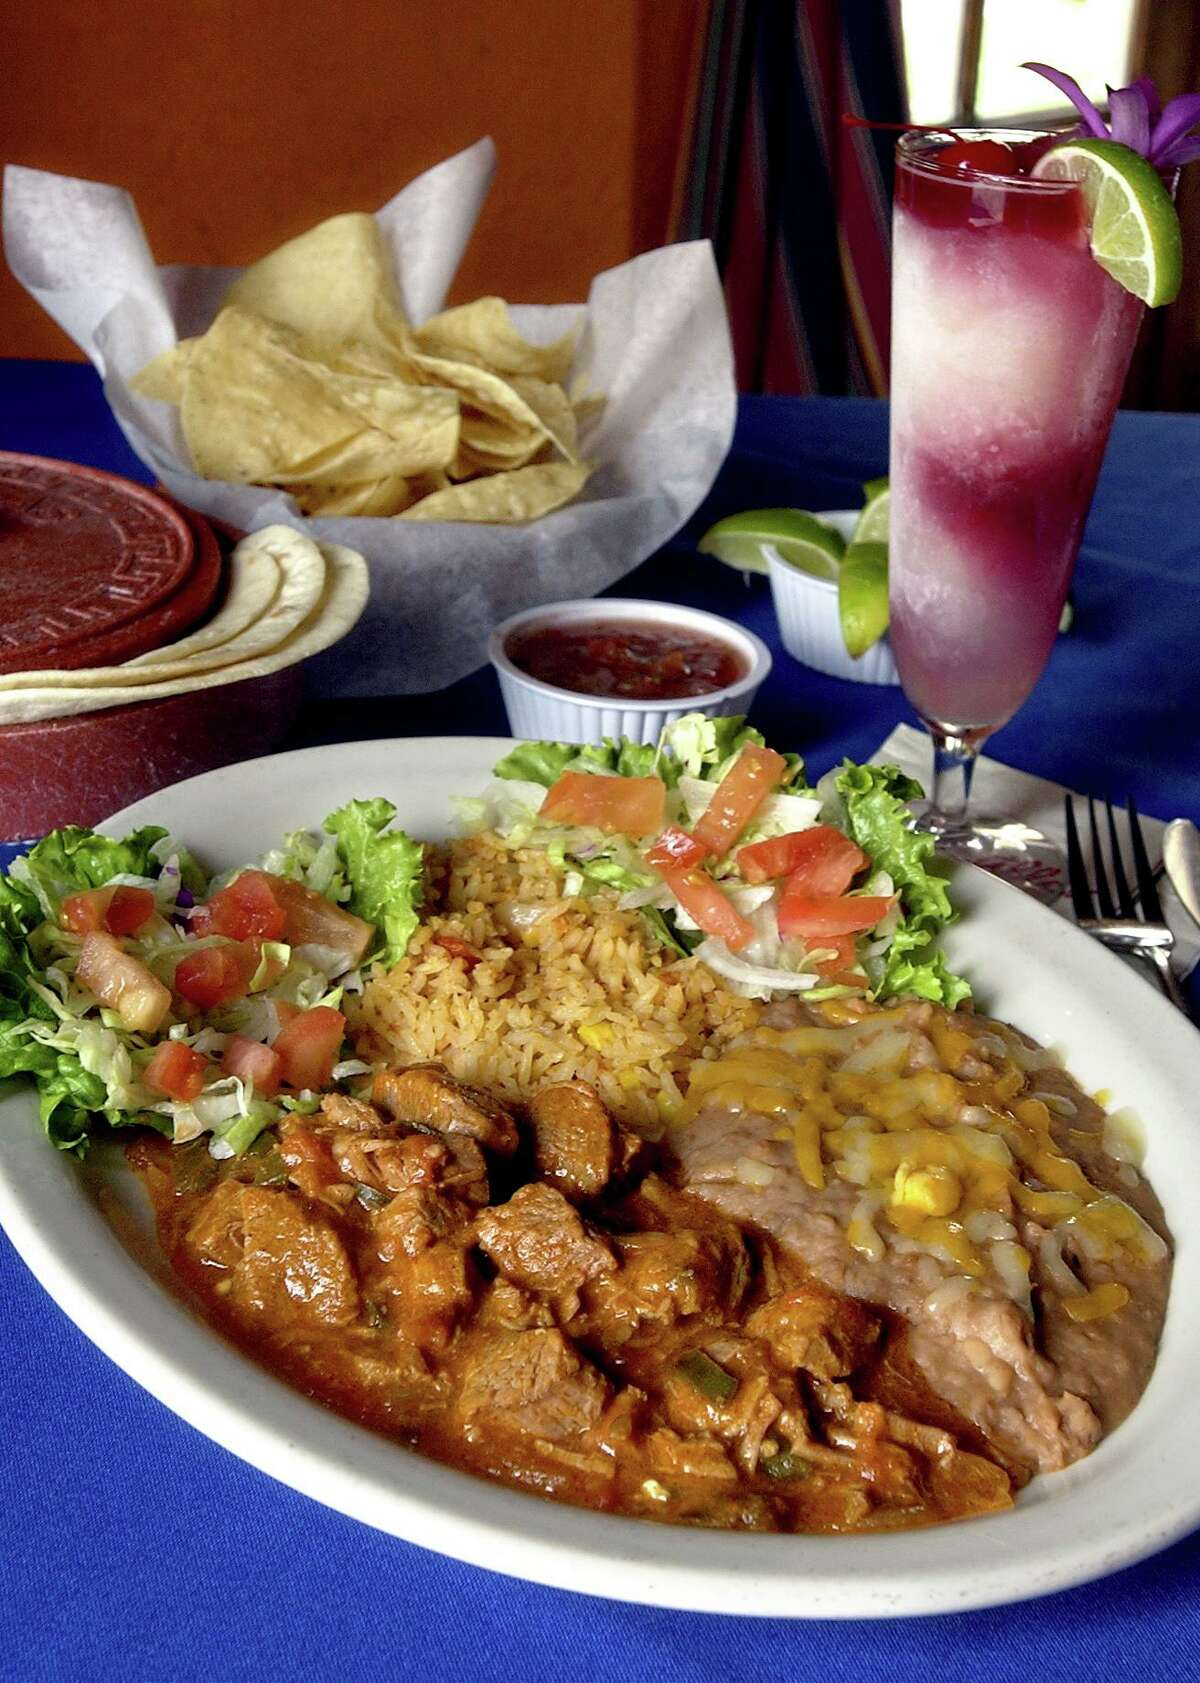 An order of food from Tomatillos Cafe y Cantina